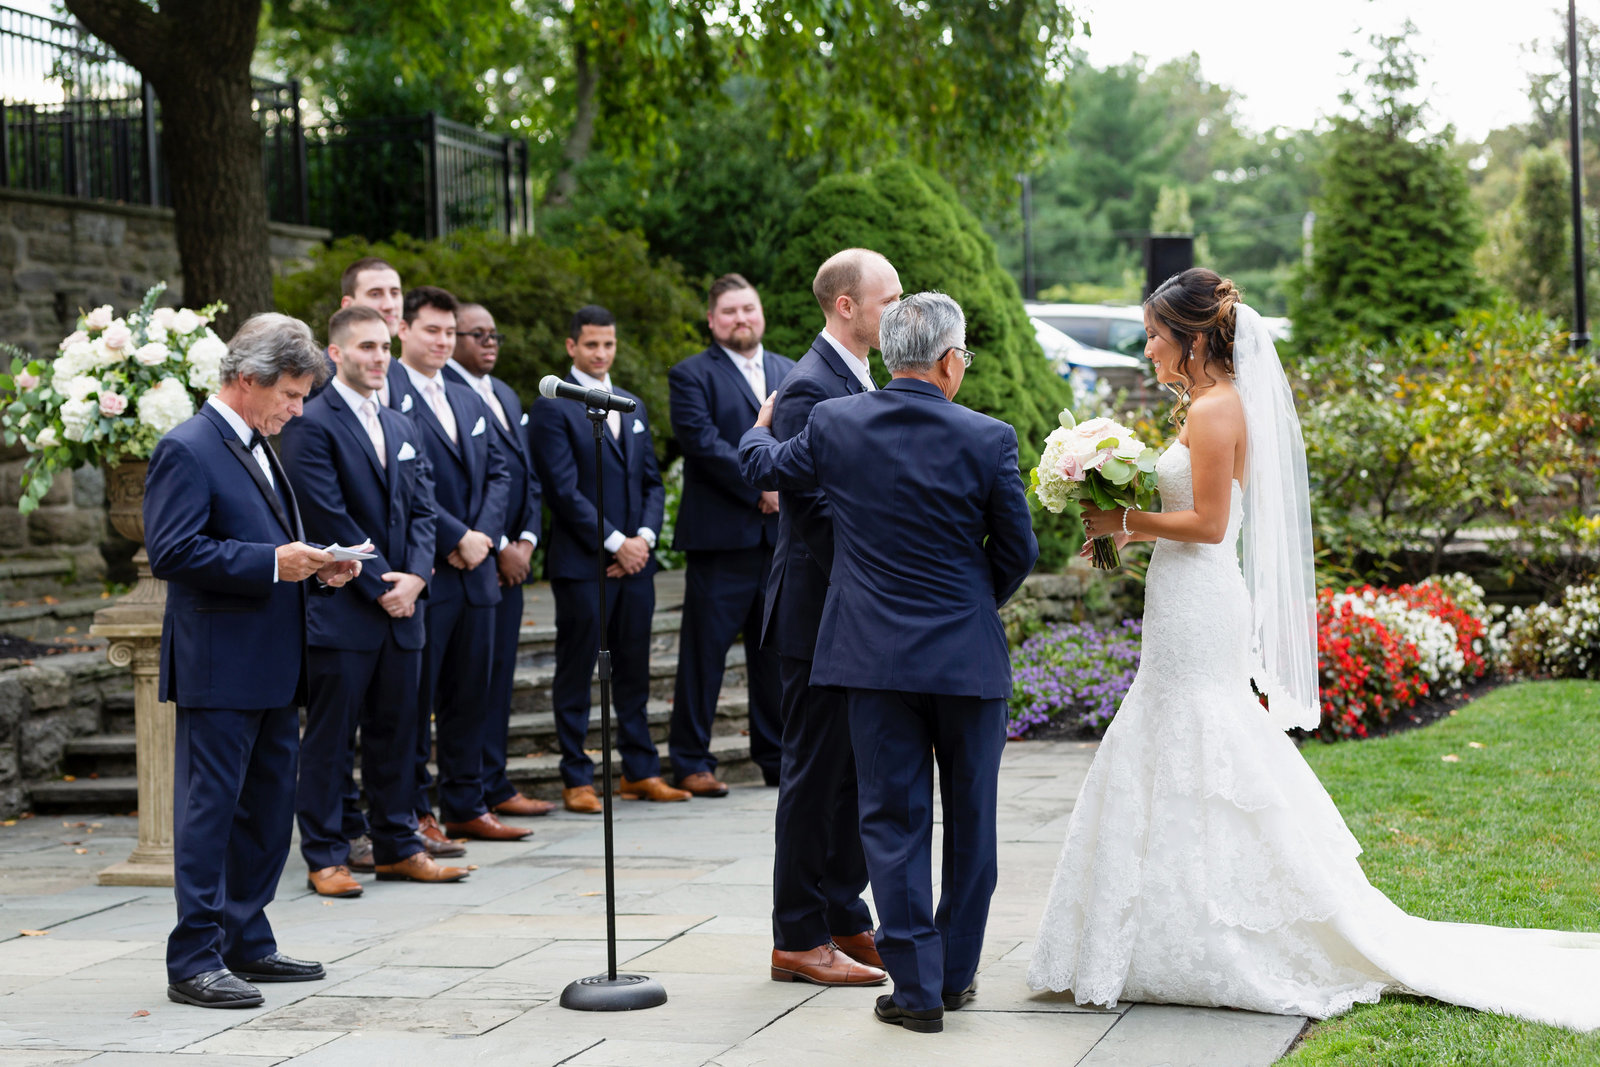 Part-4-Ceremony-Mariya-Stecklair-Photography-45